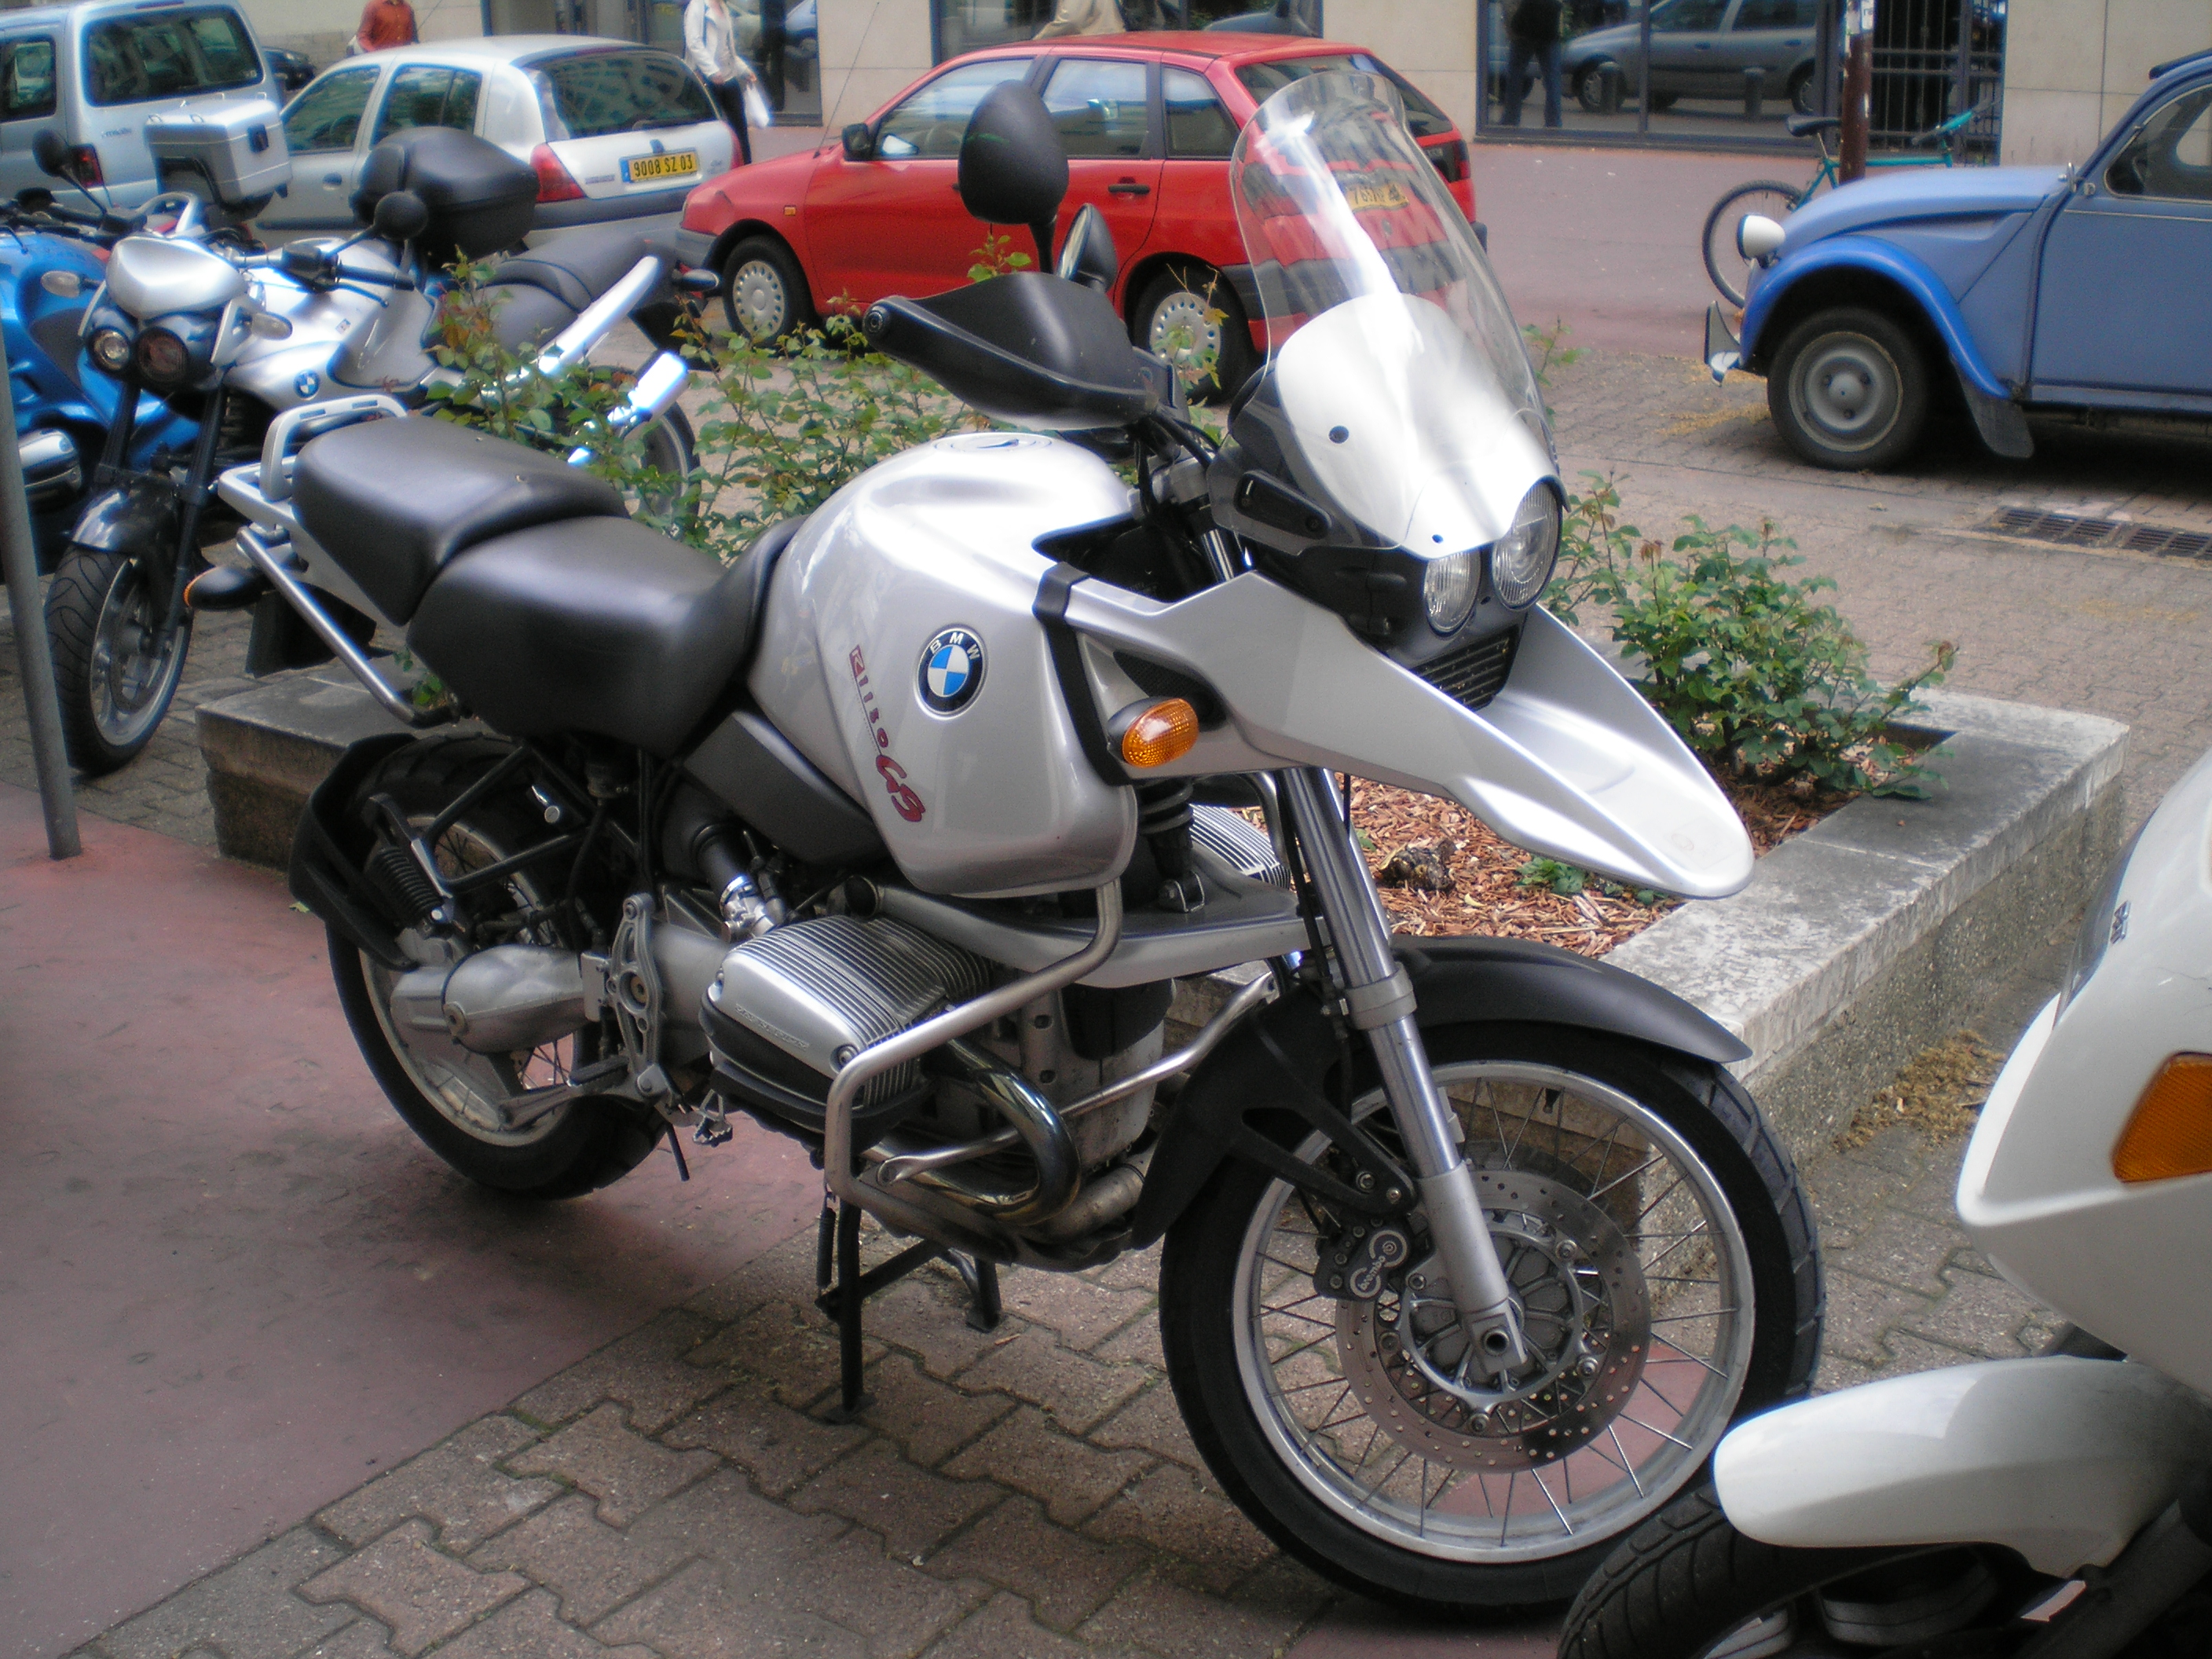 BMW R1150RS images #7030